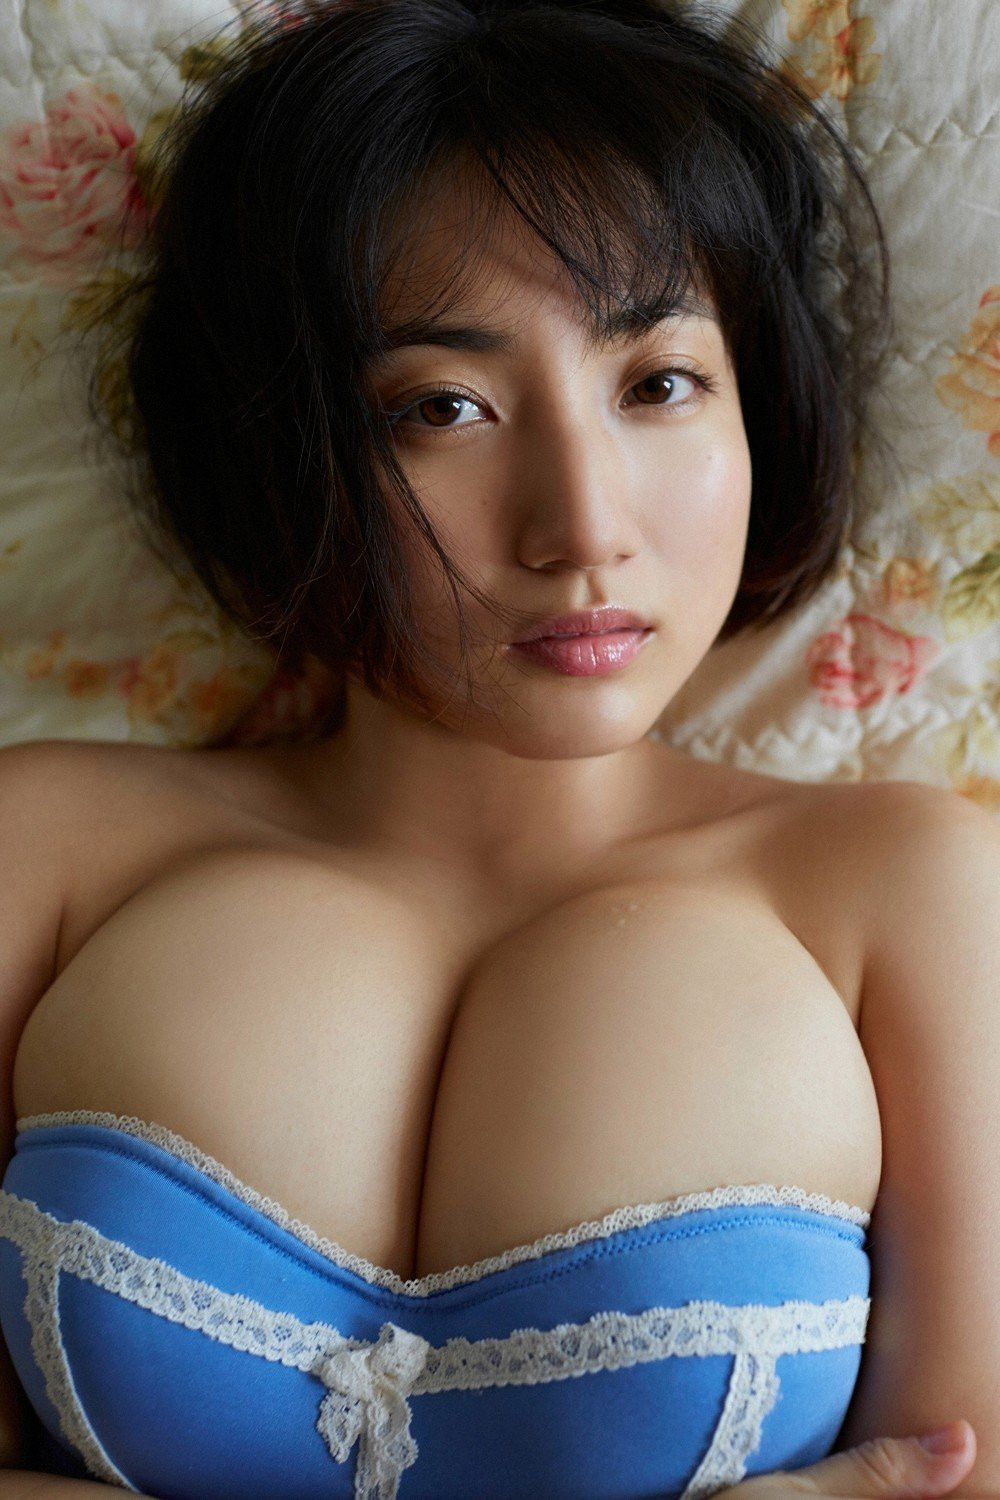 Chinese girls breasts